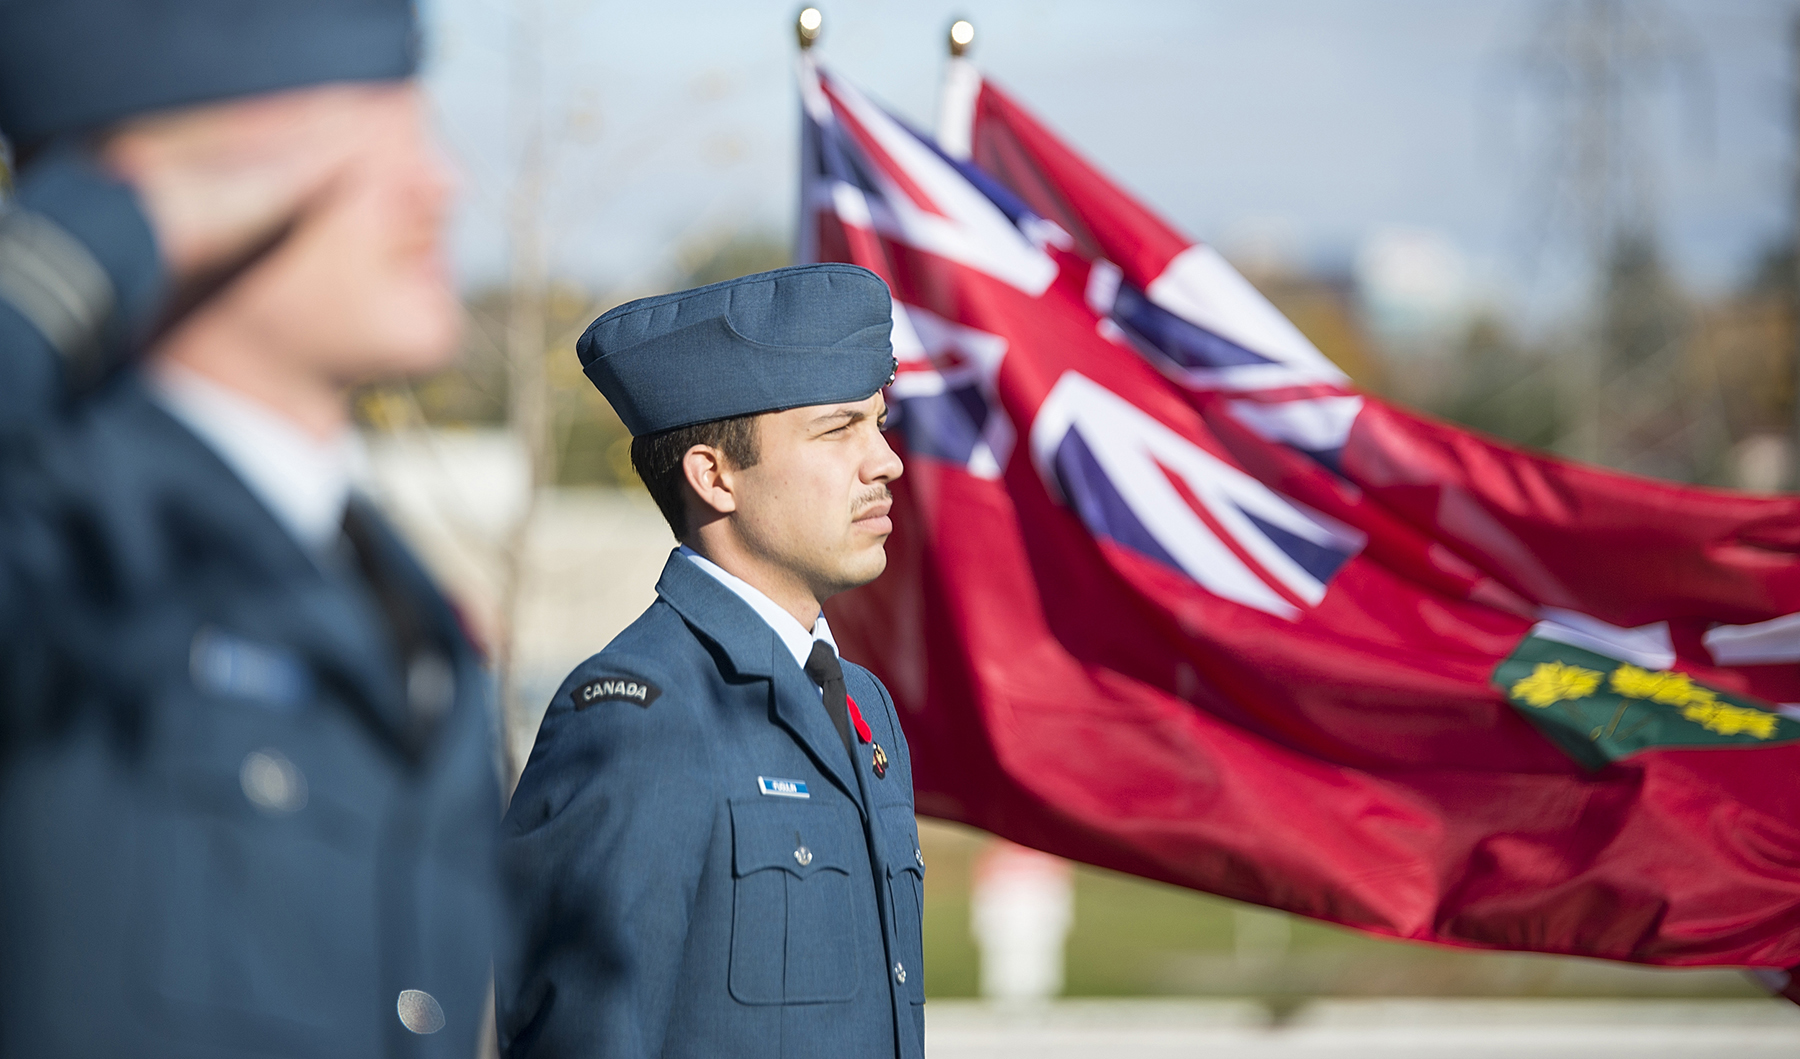 During the Remembrance Day ceremony held at Seneca College in Toronto, Ontario, on November 11, 2016, Captain Othello Fugulin stands at attention while parade commander Captain John Campbell salutes. Both are students in the Canadian Armed Forces Air Environmental Affiliated Degree program. PHOTO: Tai Nguyen, Seneca College